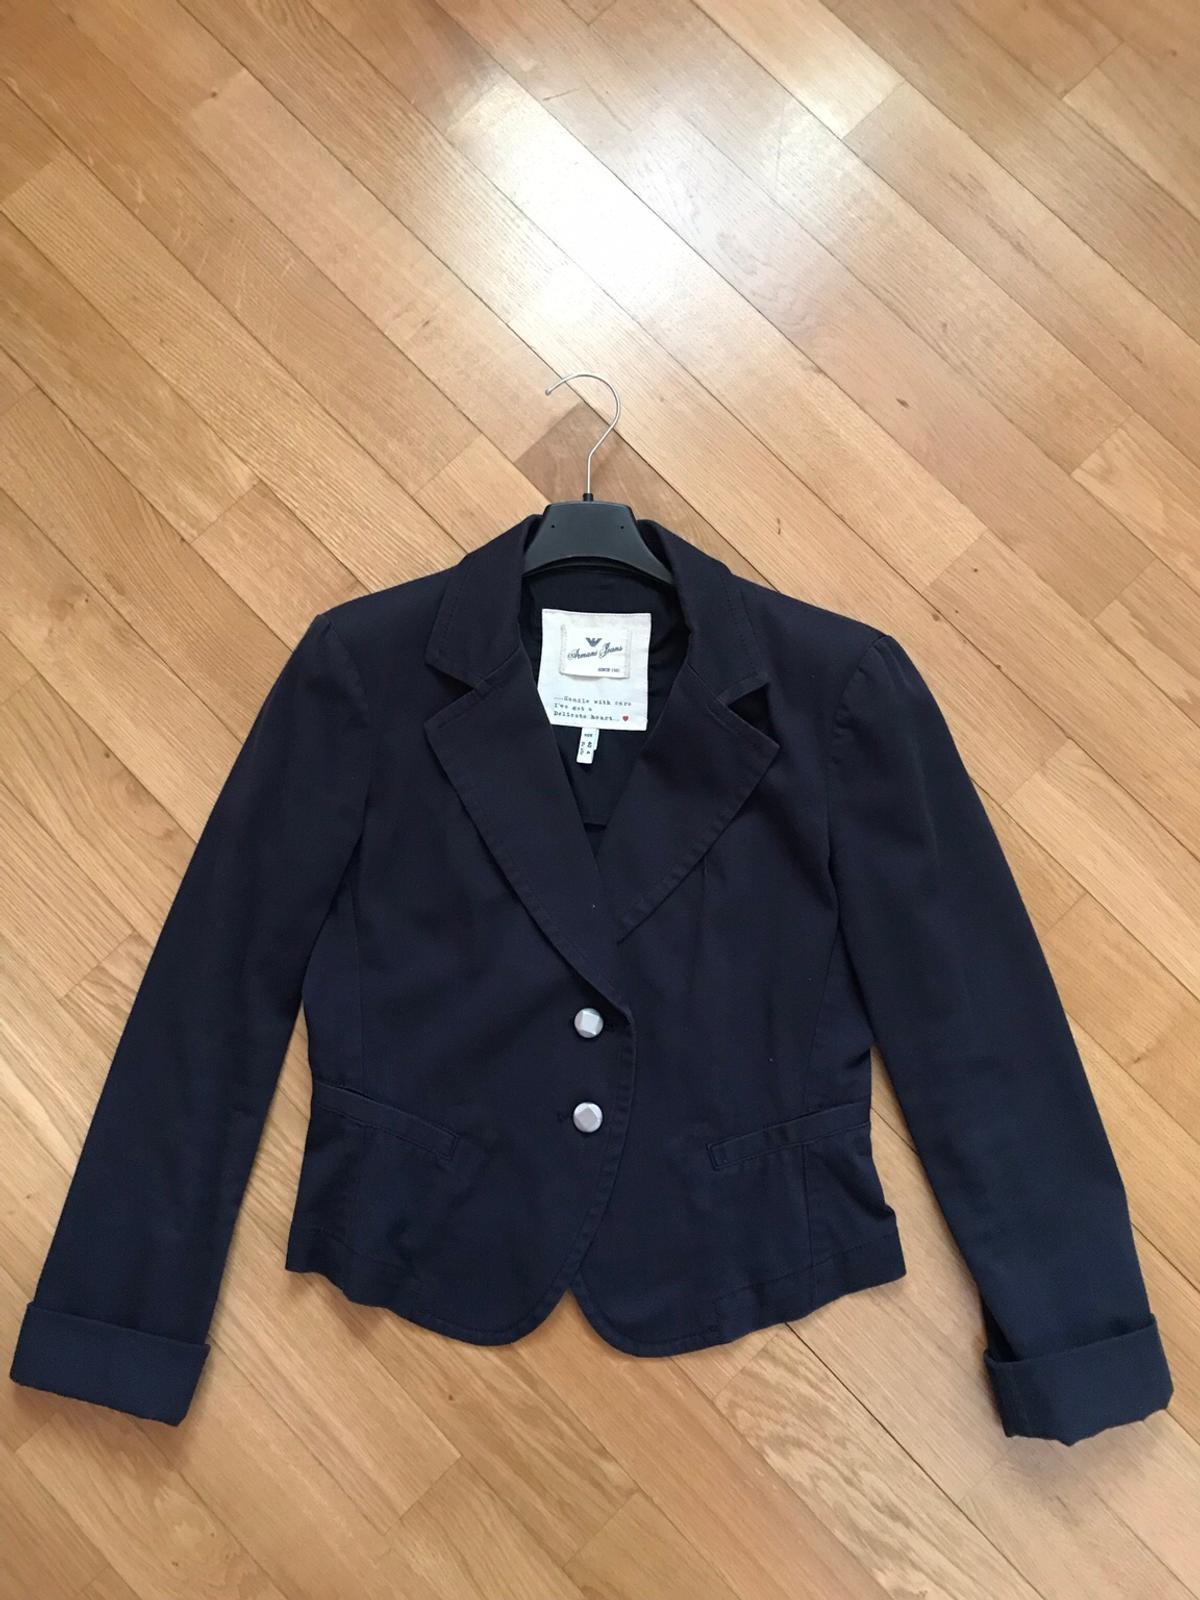 More /& More Donna Giacca Blazer Giacca Donna NUOVO